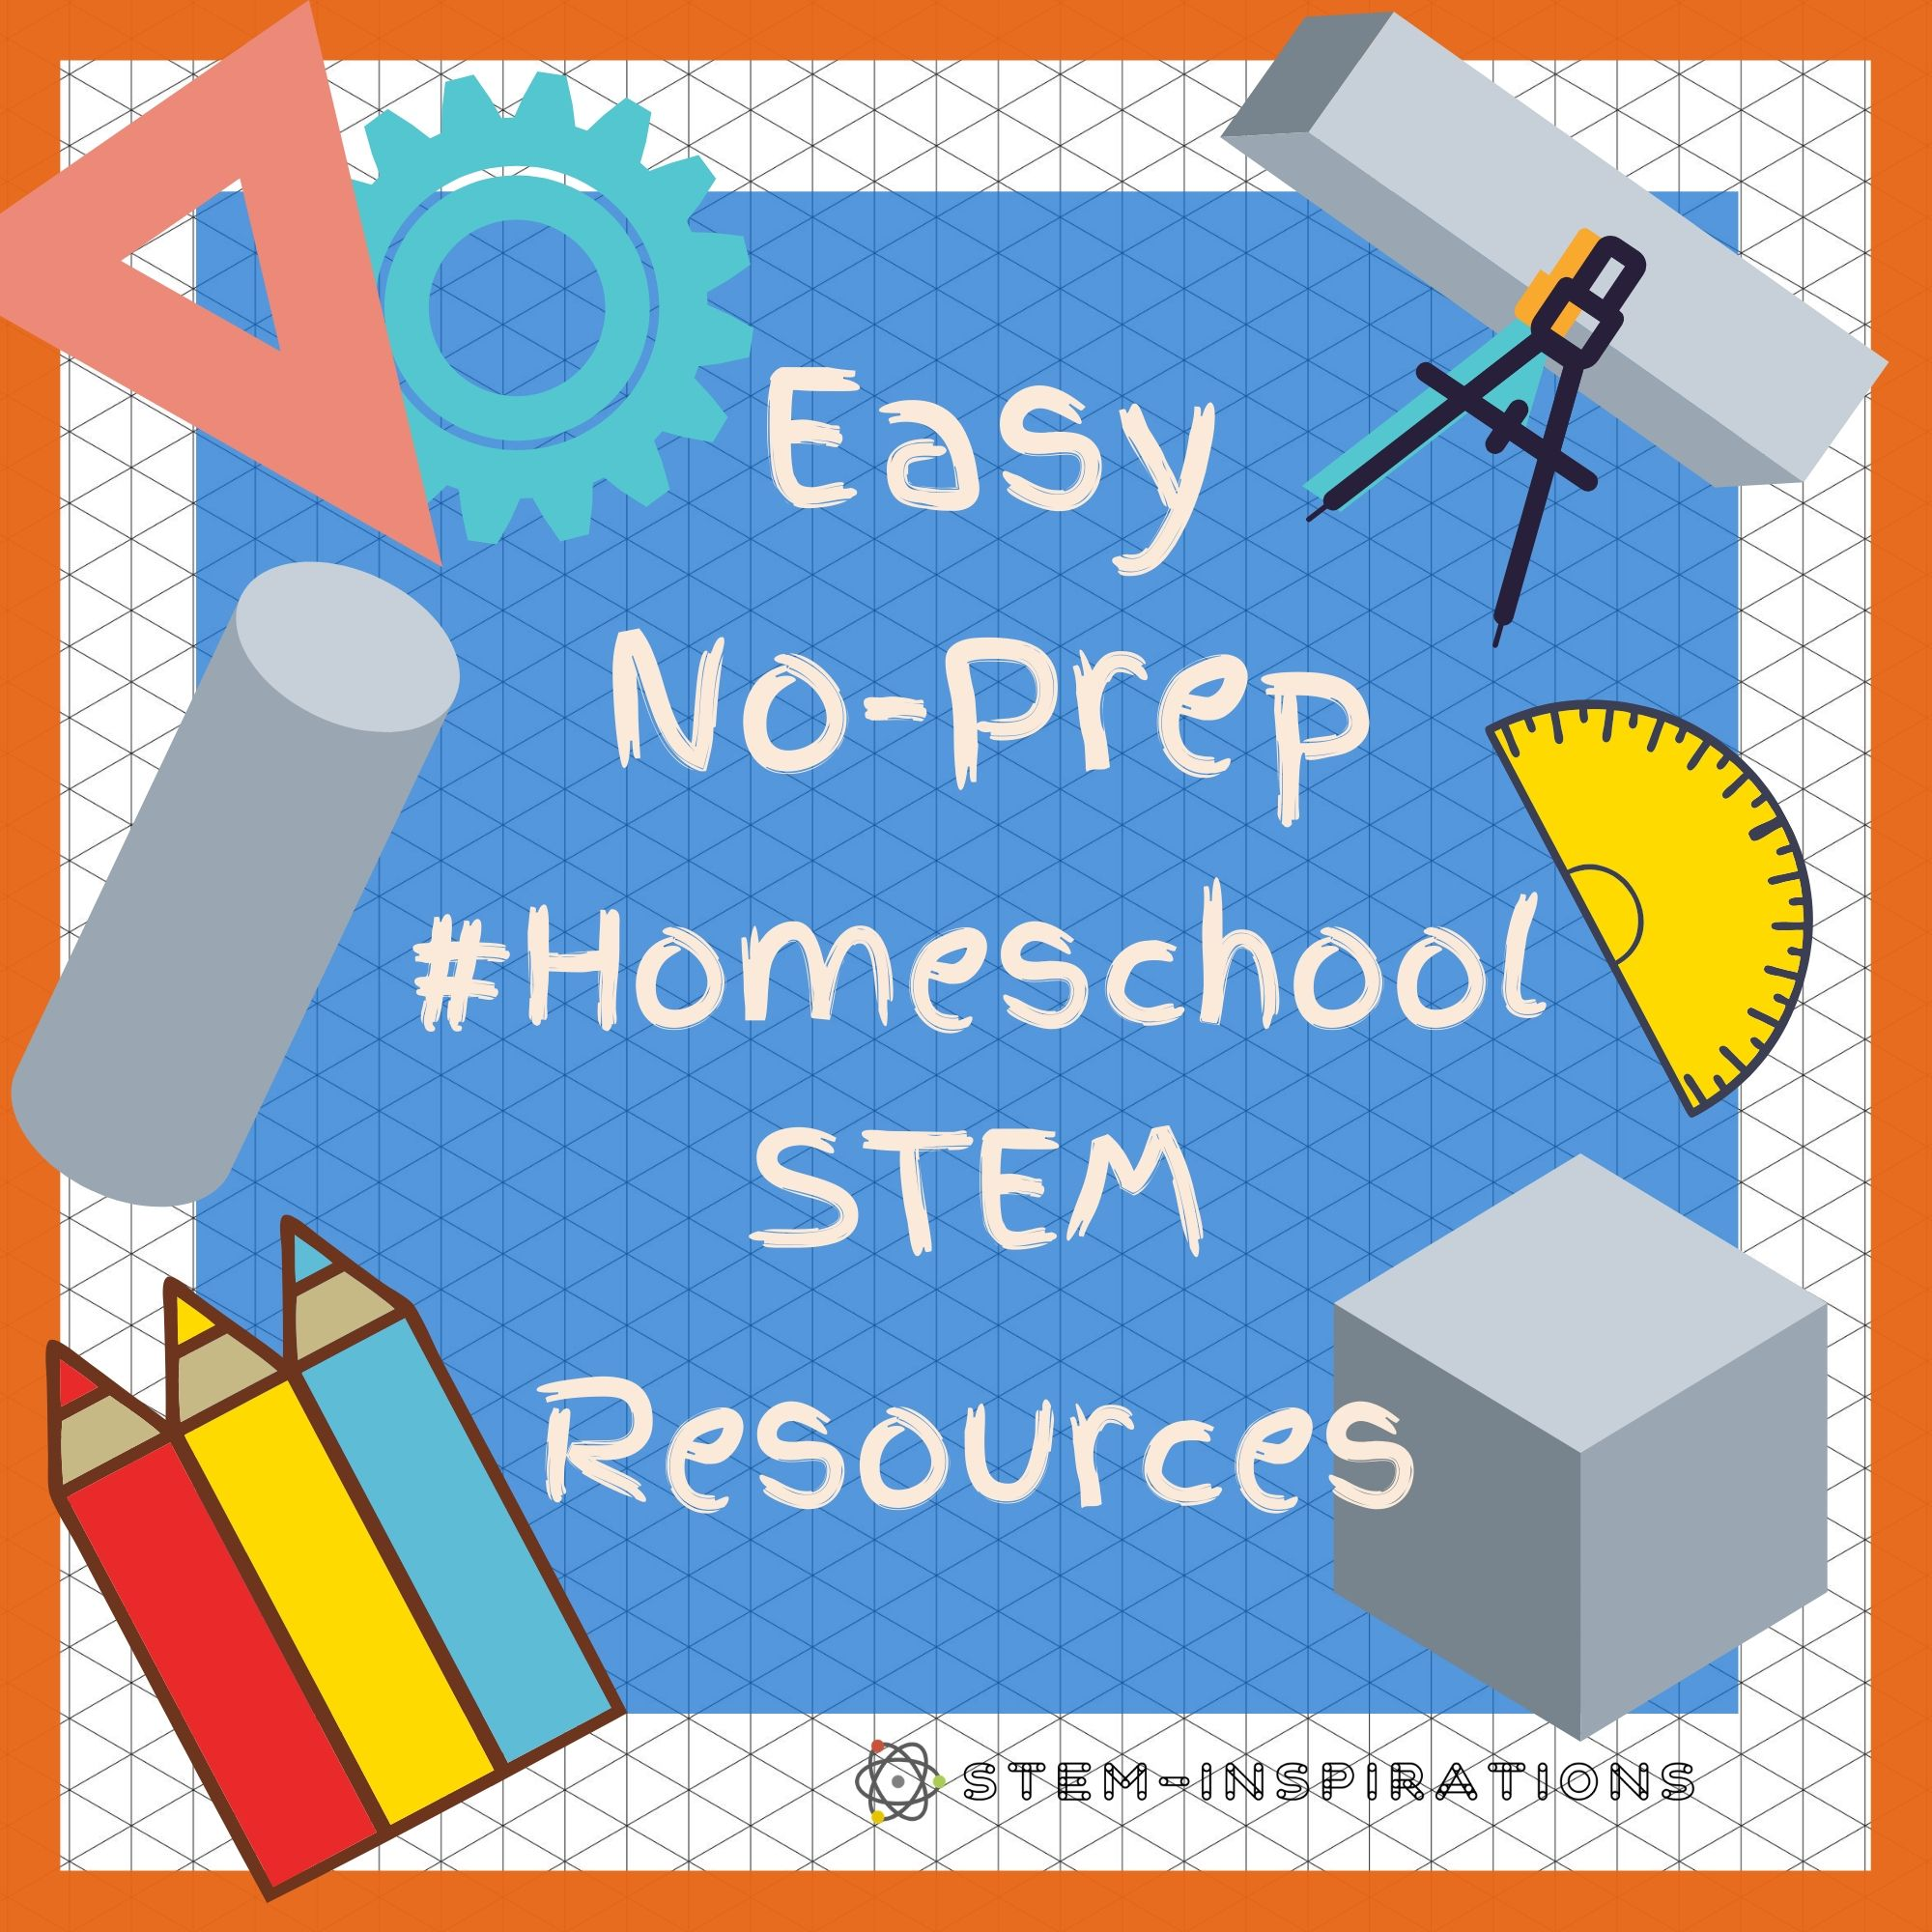 Teach Stem At Home The Easy Way With These No Prep